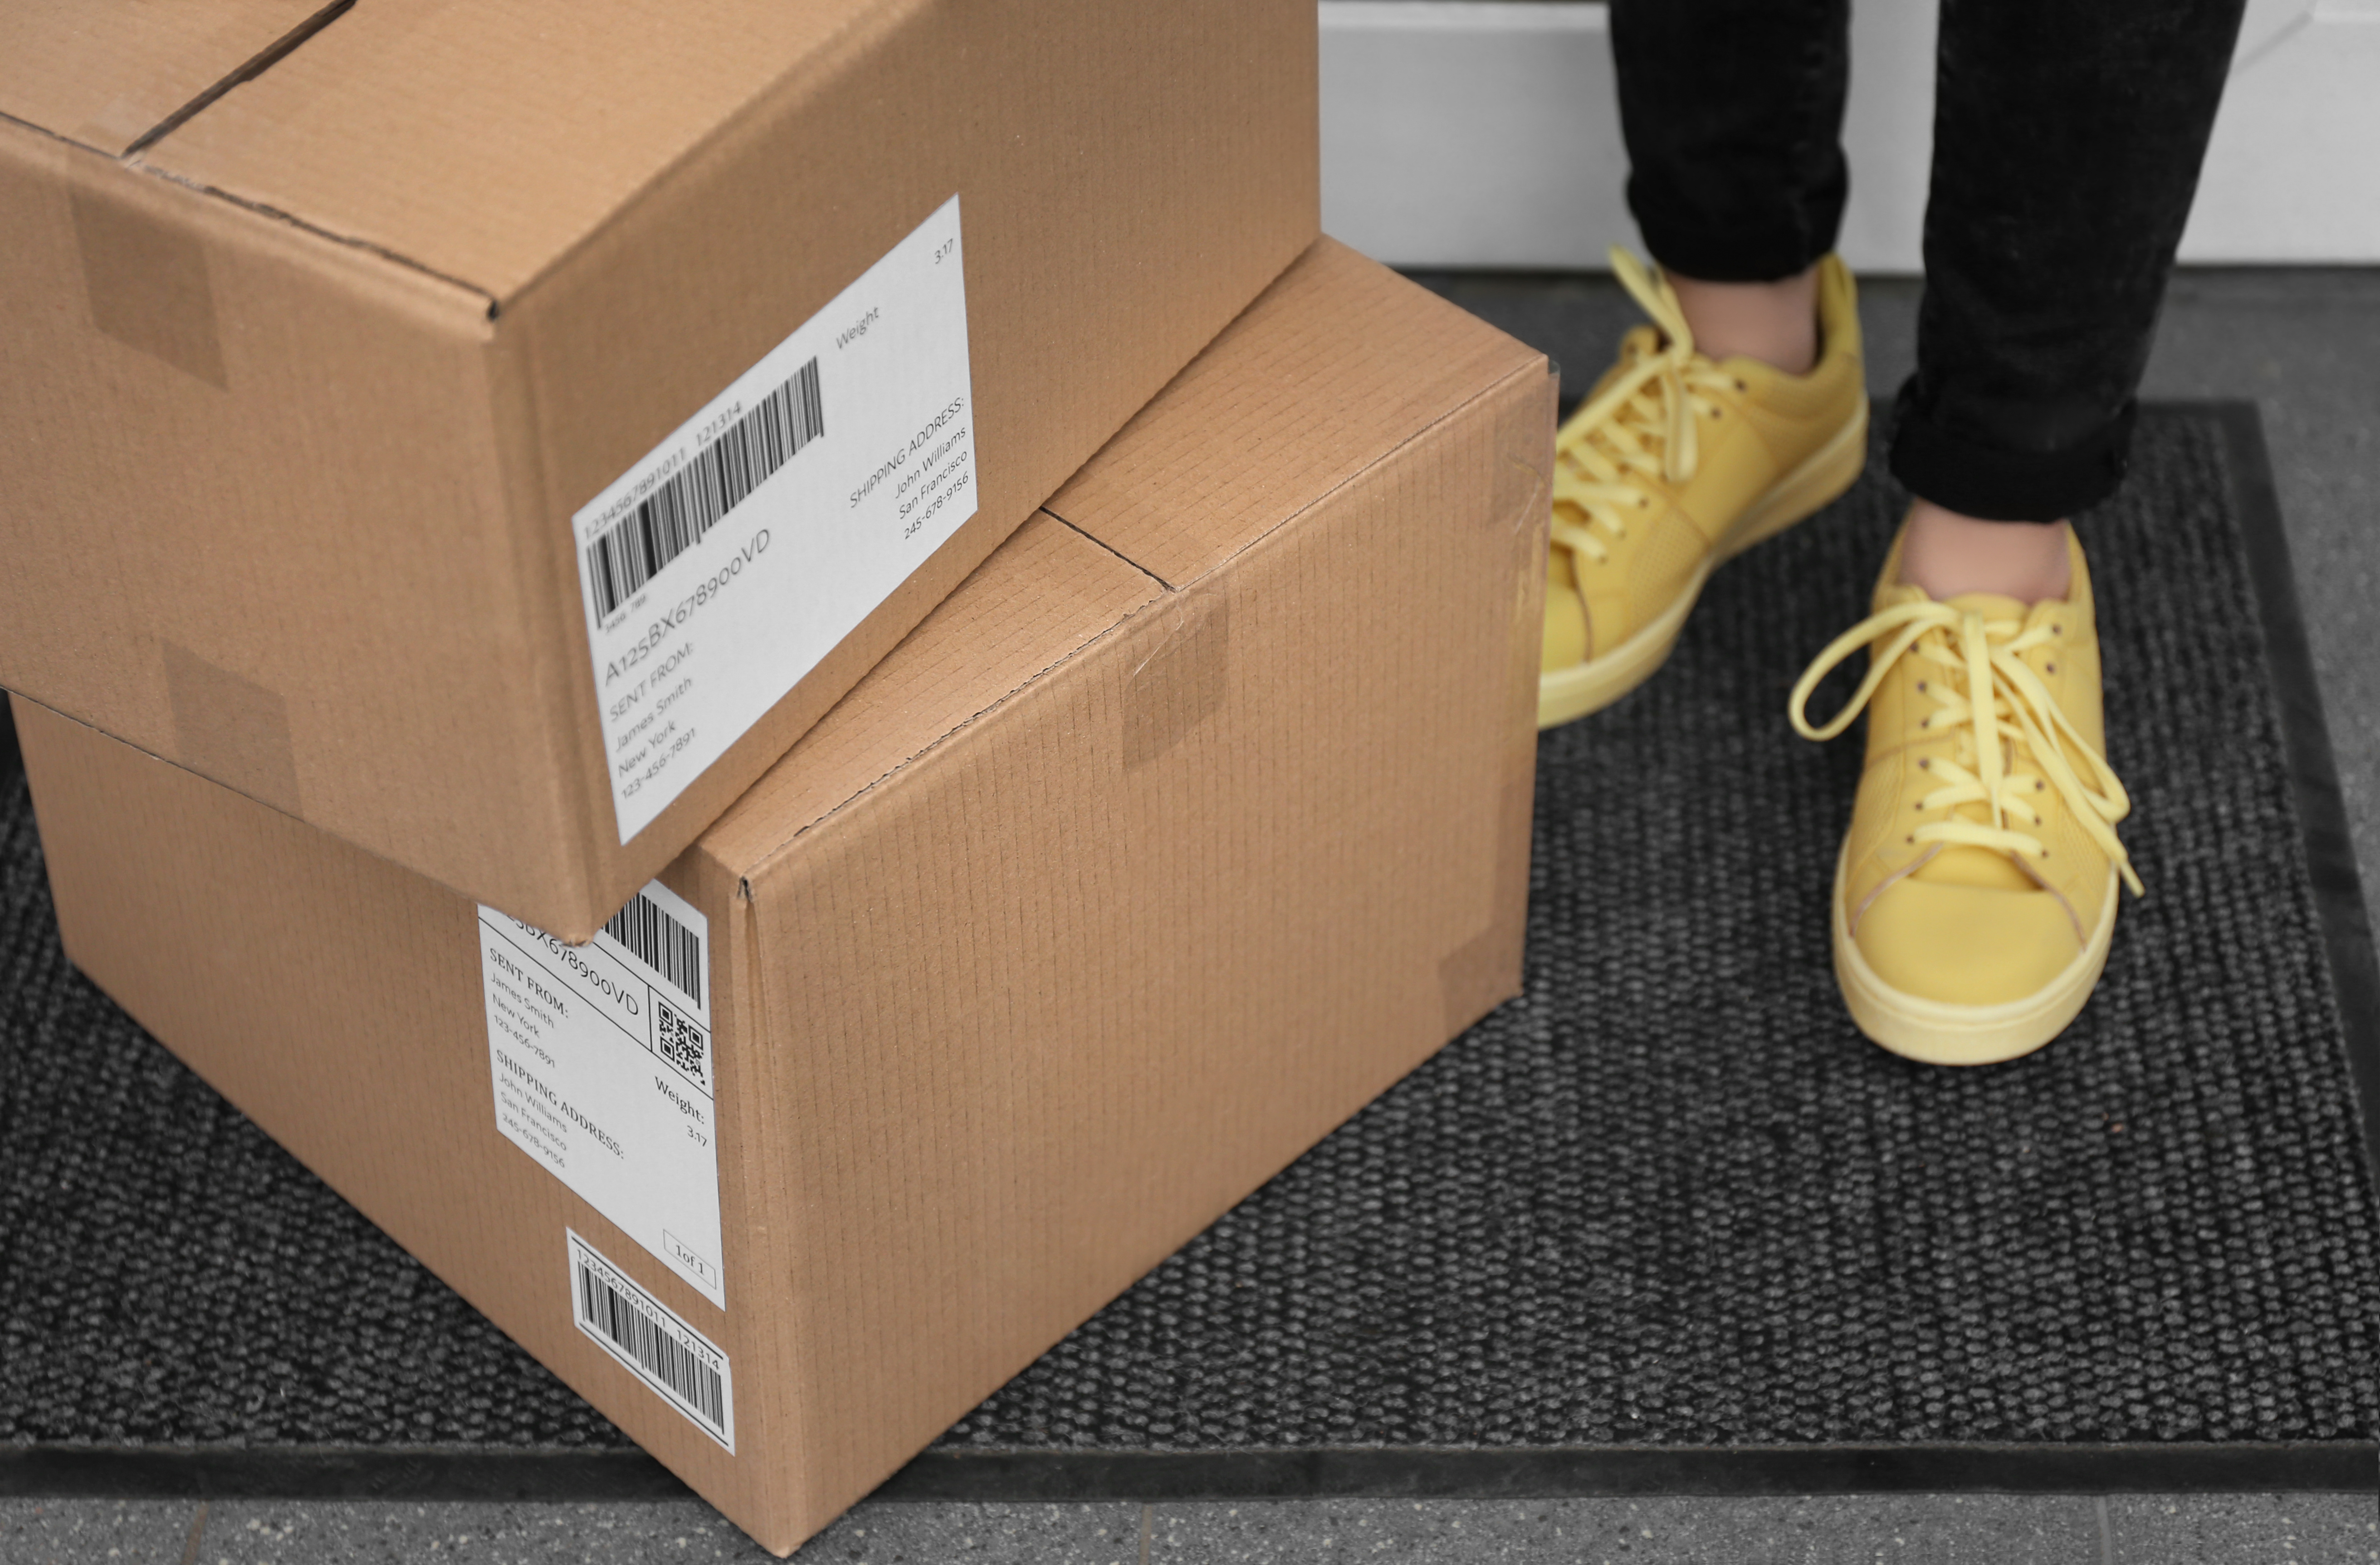 Say Goodbye to Porch Pirates with UPS My Choice for Home